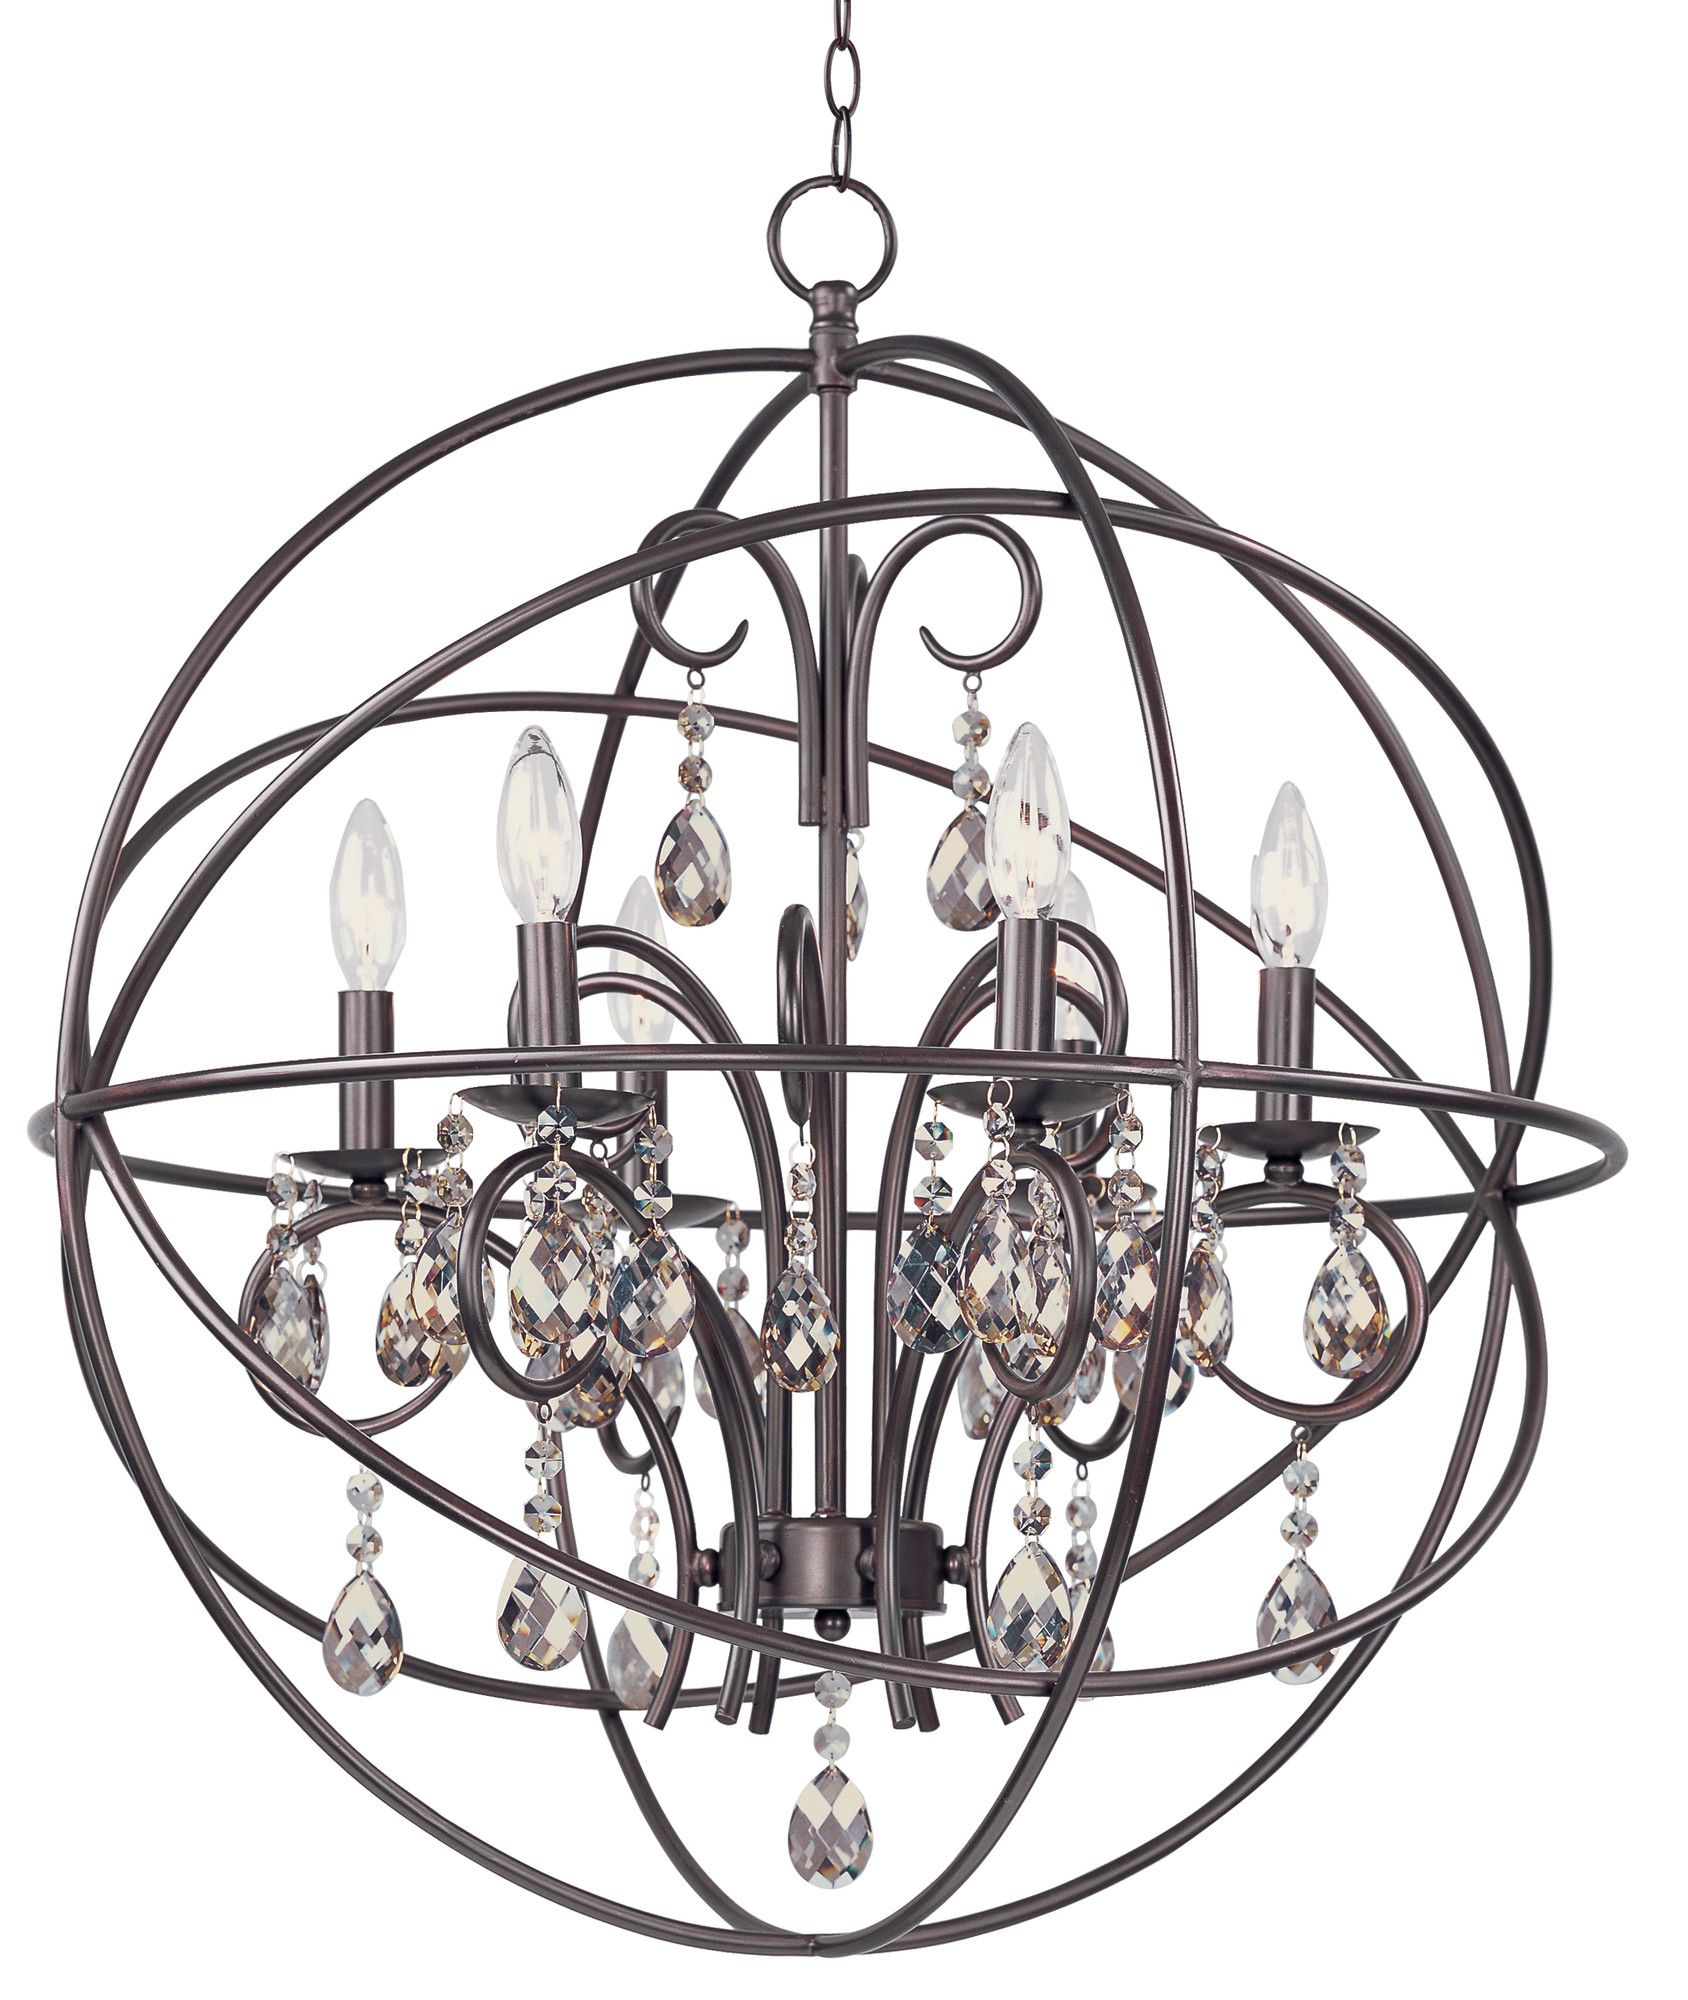 Maxim Lighting Orbit 6Light Pendant & Reviews Wayfair